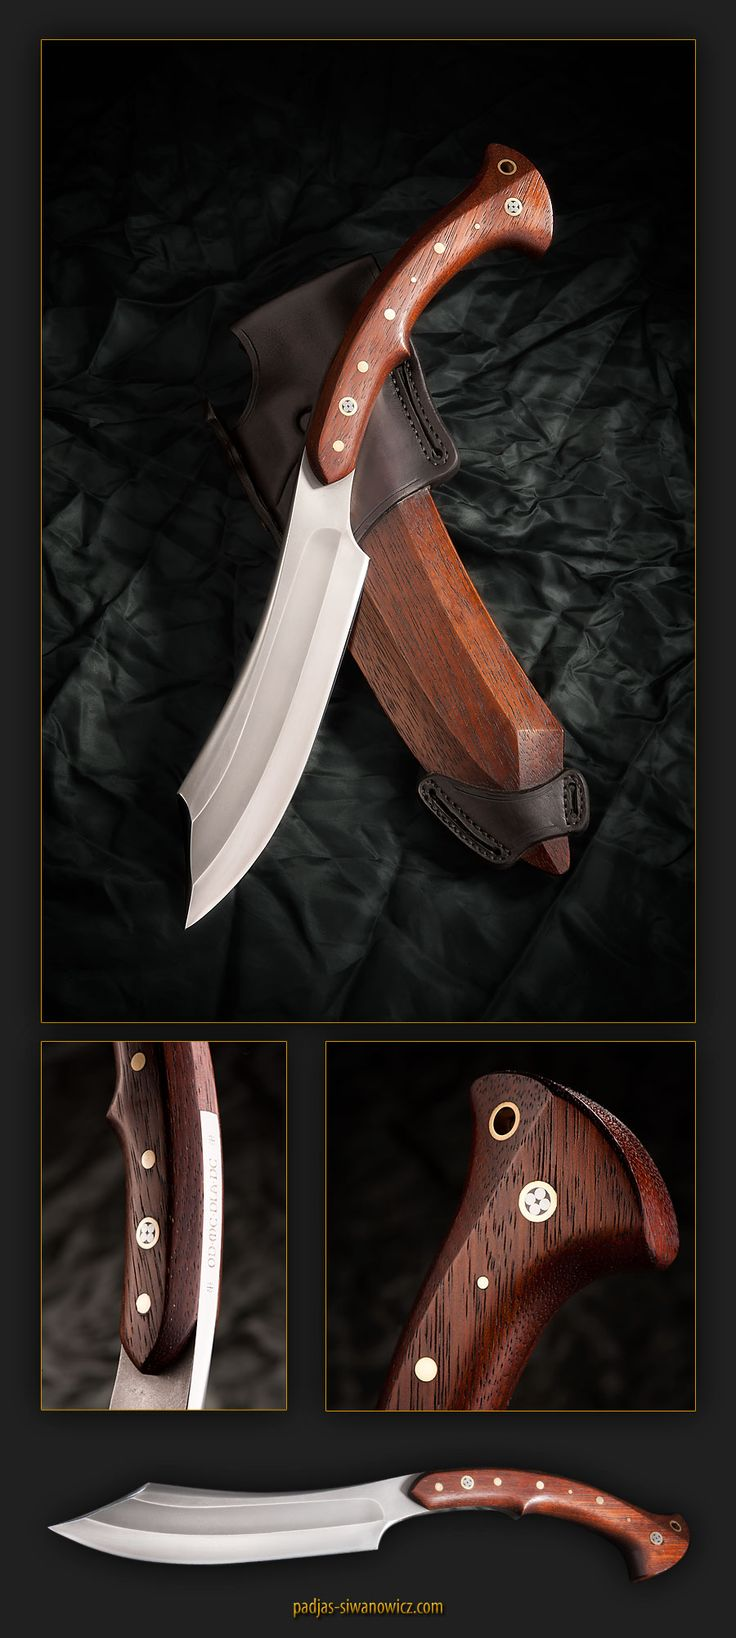 """this is really heavy tool.  steel: K110 Bohler (D2 eqv)  wood: kempas  knife dimensions: 460mm (~18"""") x 9mm (~0,354"""")  weight: 0,82kg (29 oz)"""